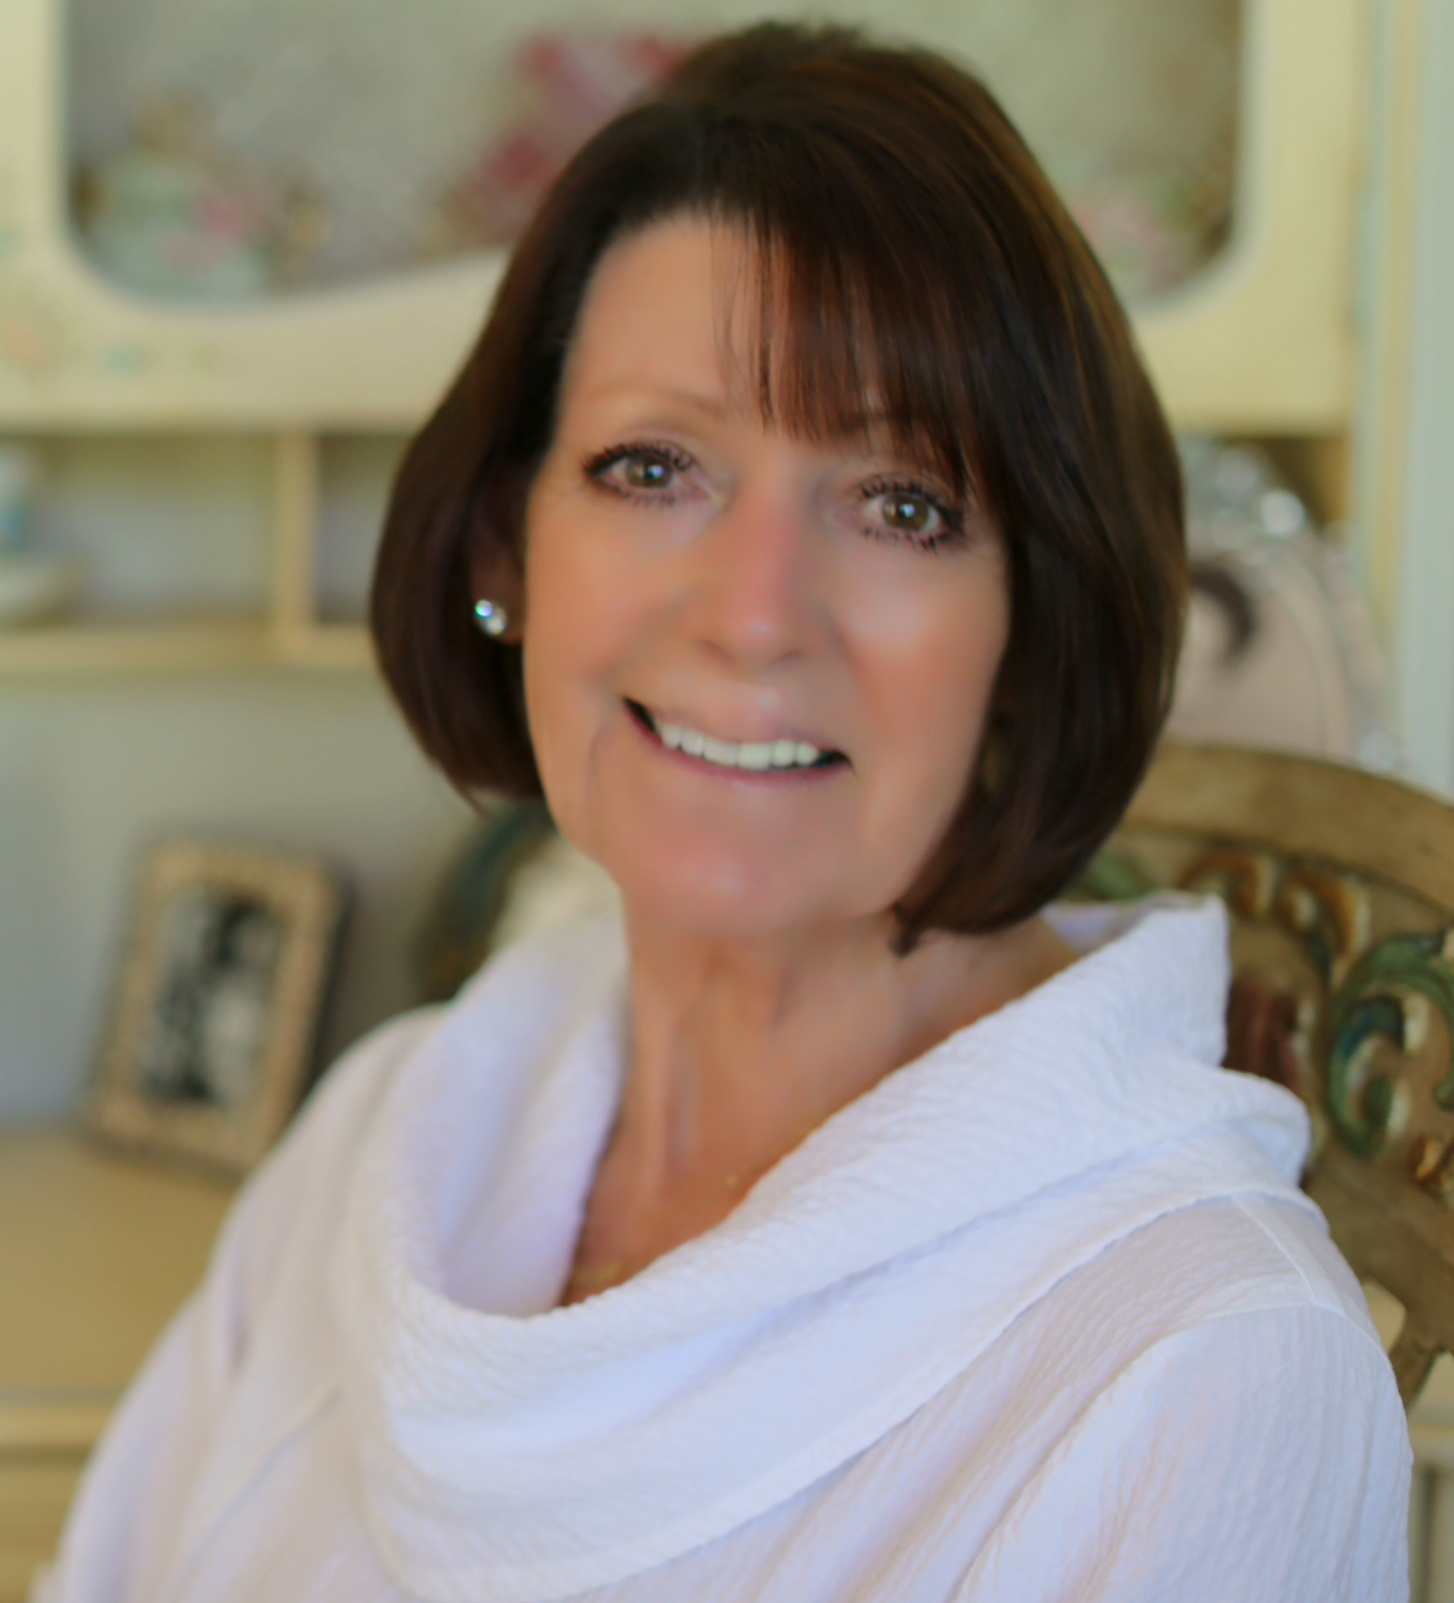 Here is my interview with JoDee Neathery